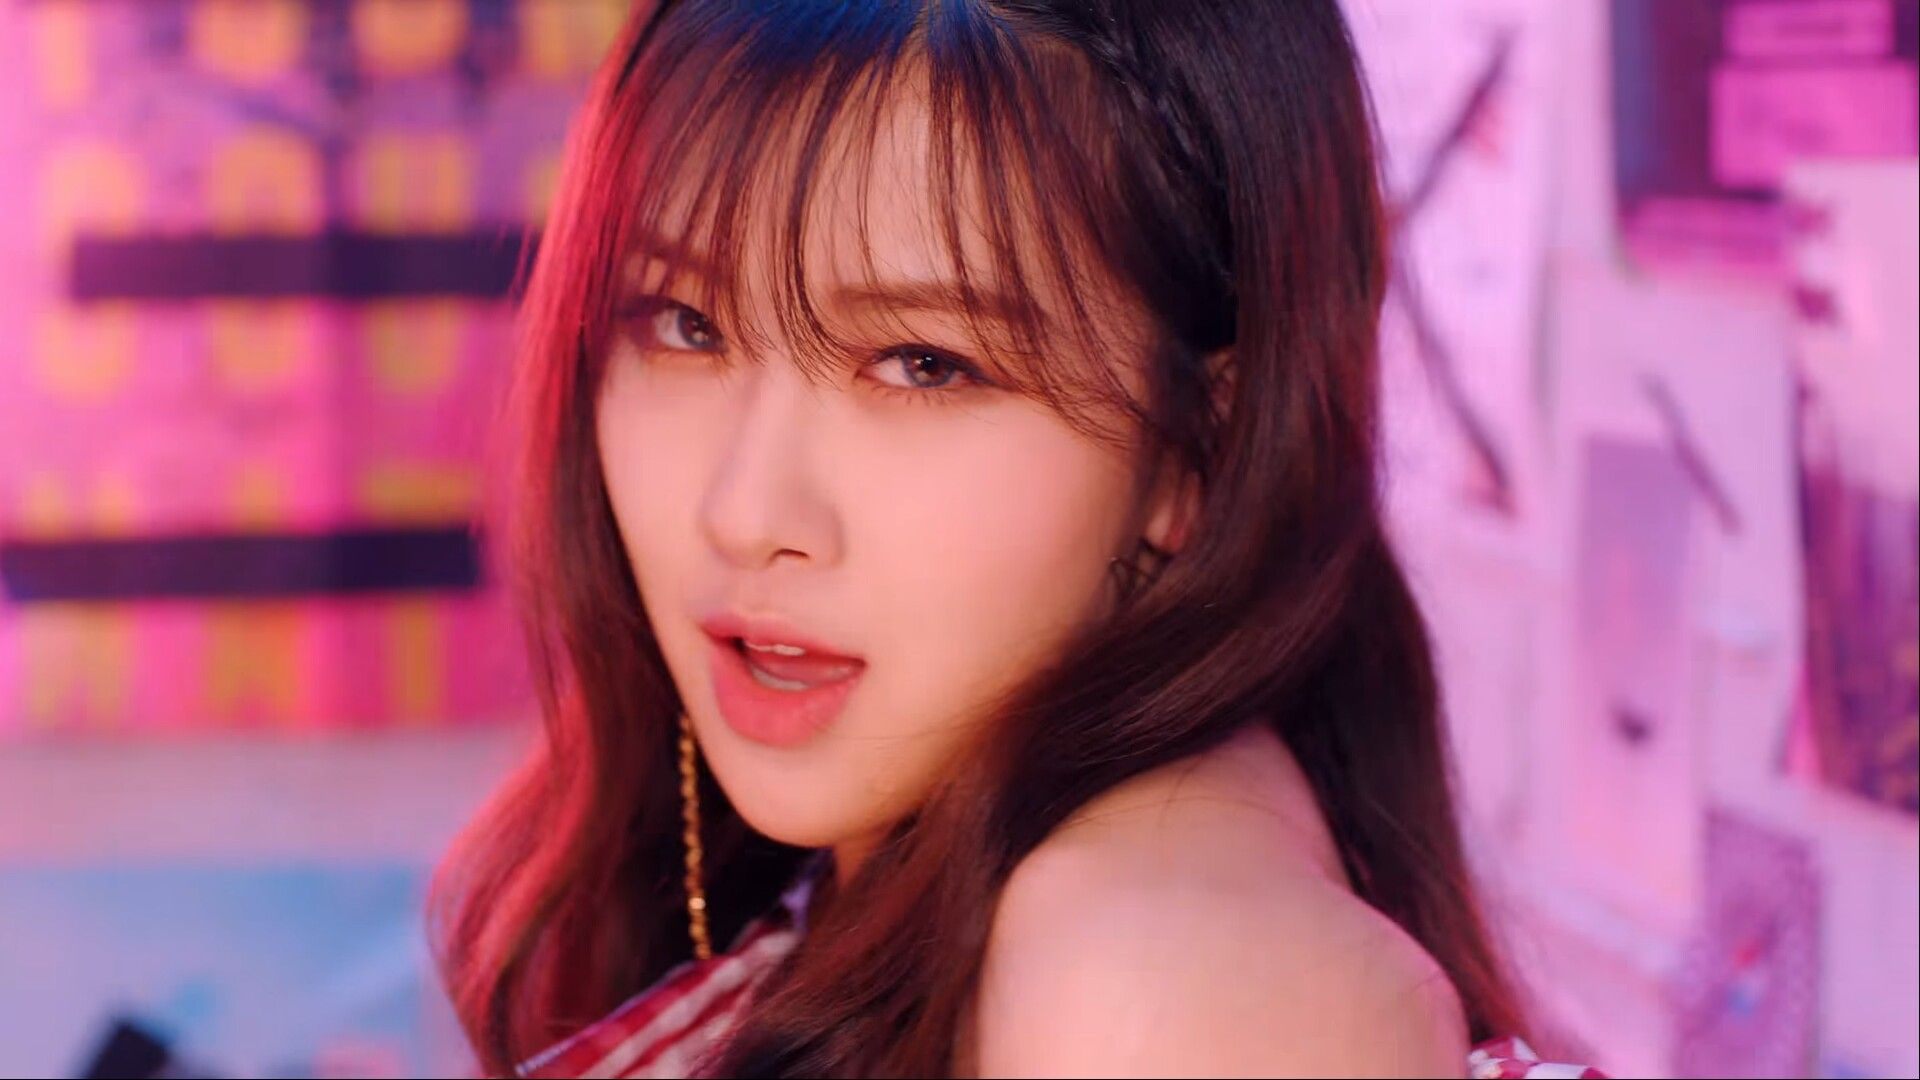 Rose Blackpink Blink Blackpink Rose Rose Icon Hairstyles With